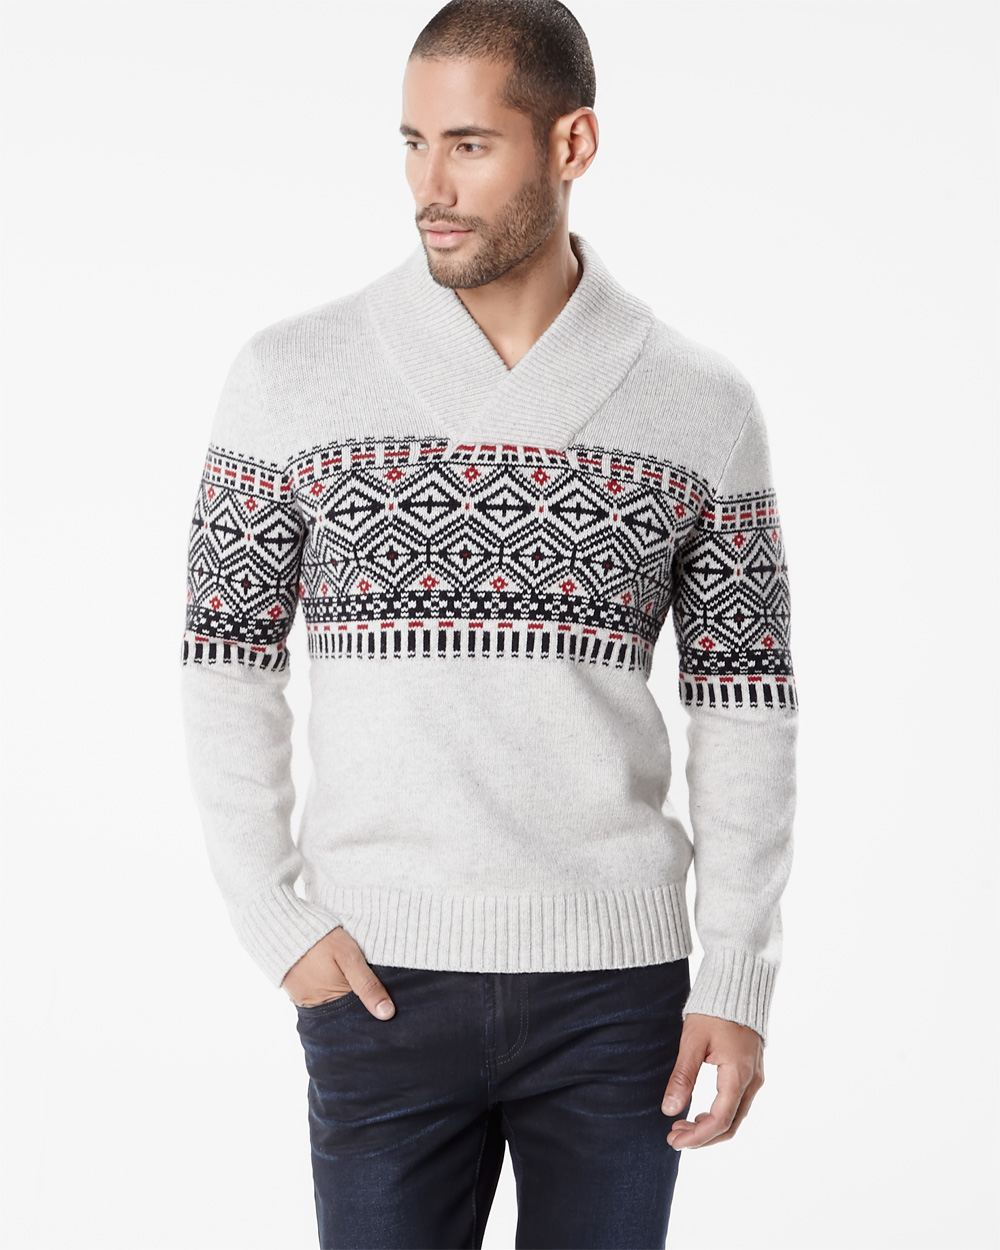 Fair isle shawl collar sweater | RW&CO.